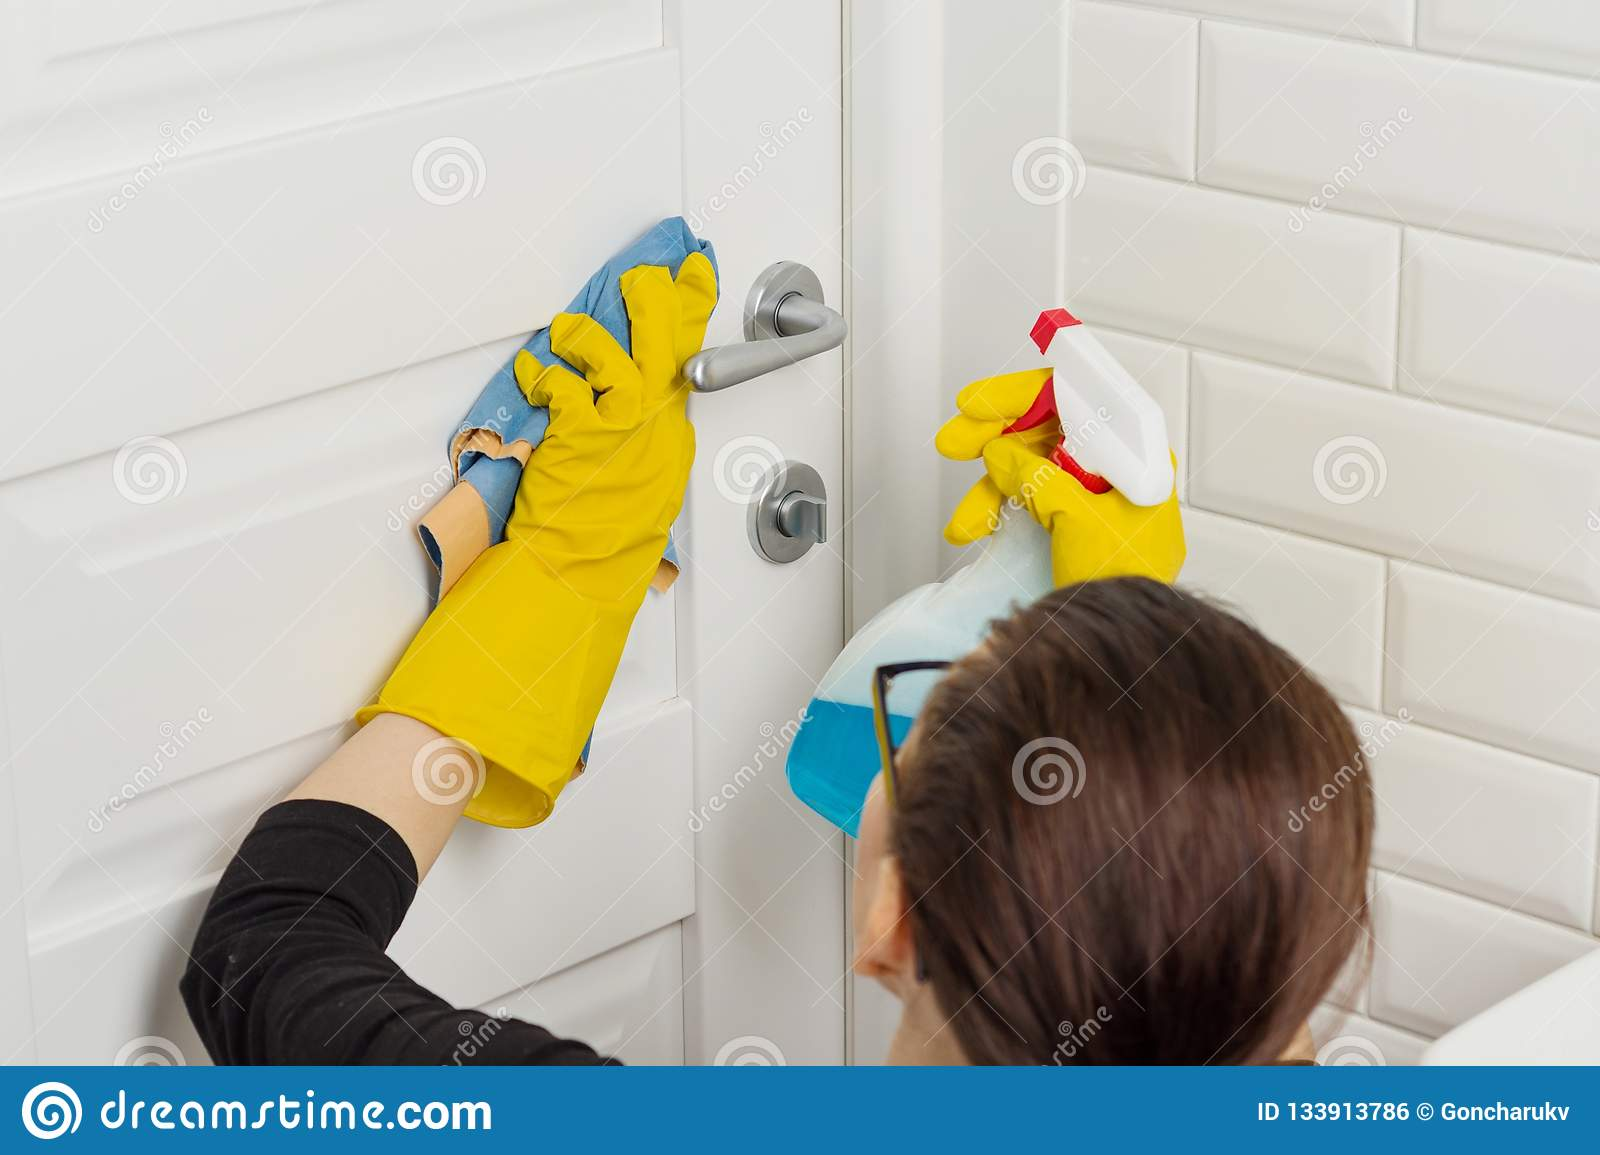 Professional Cleaning Services  Woman Worker In Rubber